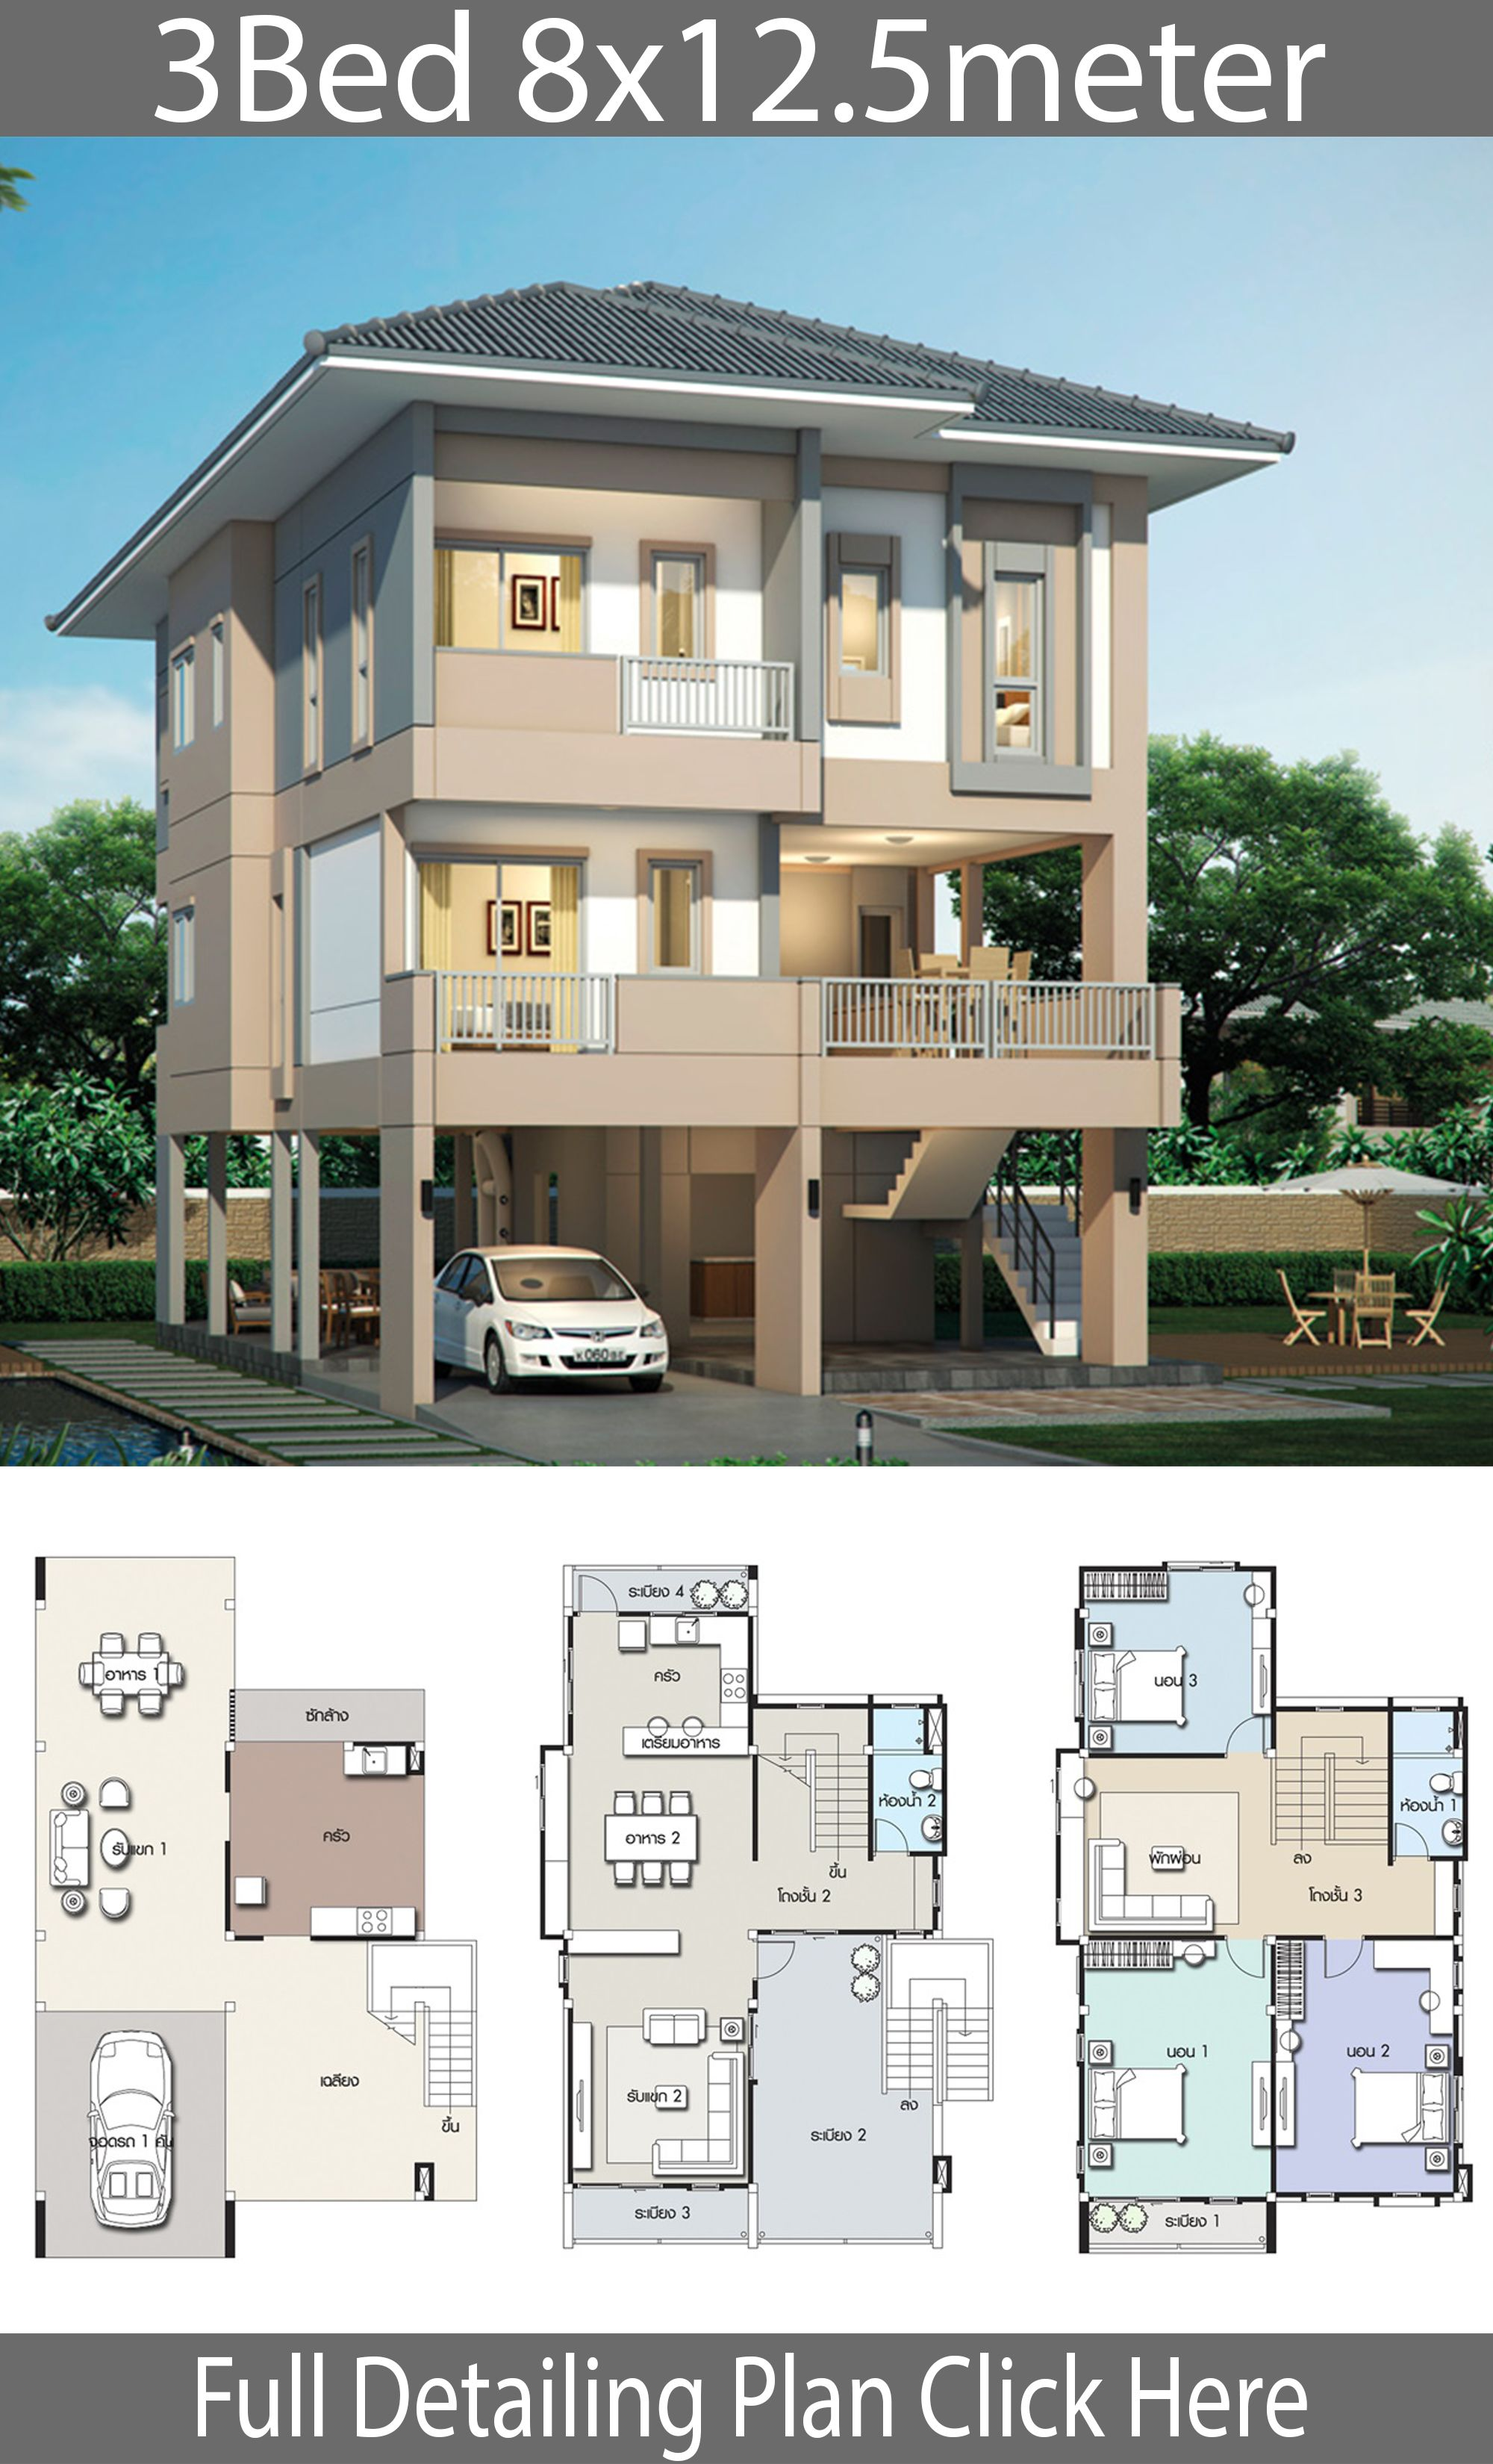 House Design Plan 8x12 5m With 3 Bedrooms House Idea In 2020 3 Storey House Design Model House Plan Modern House Design